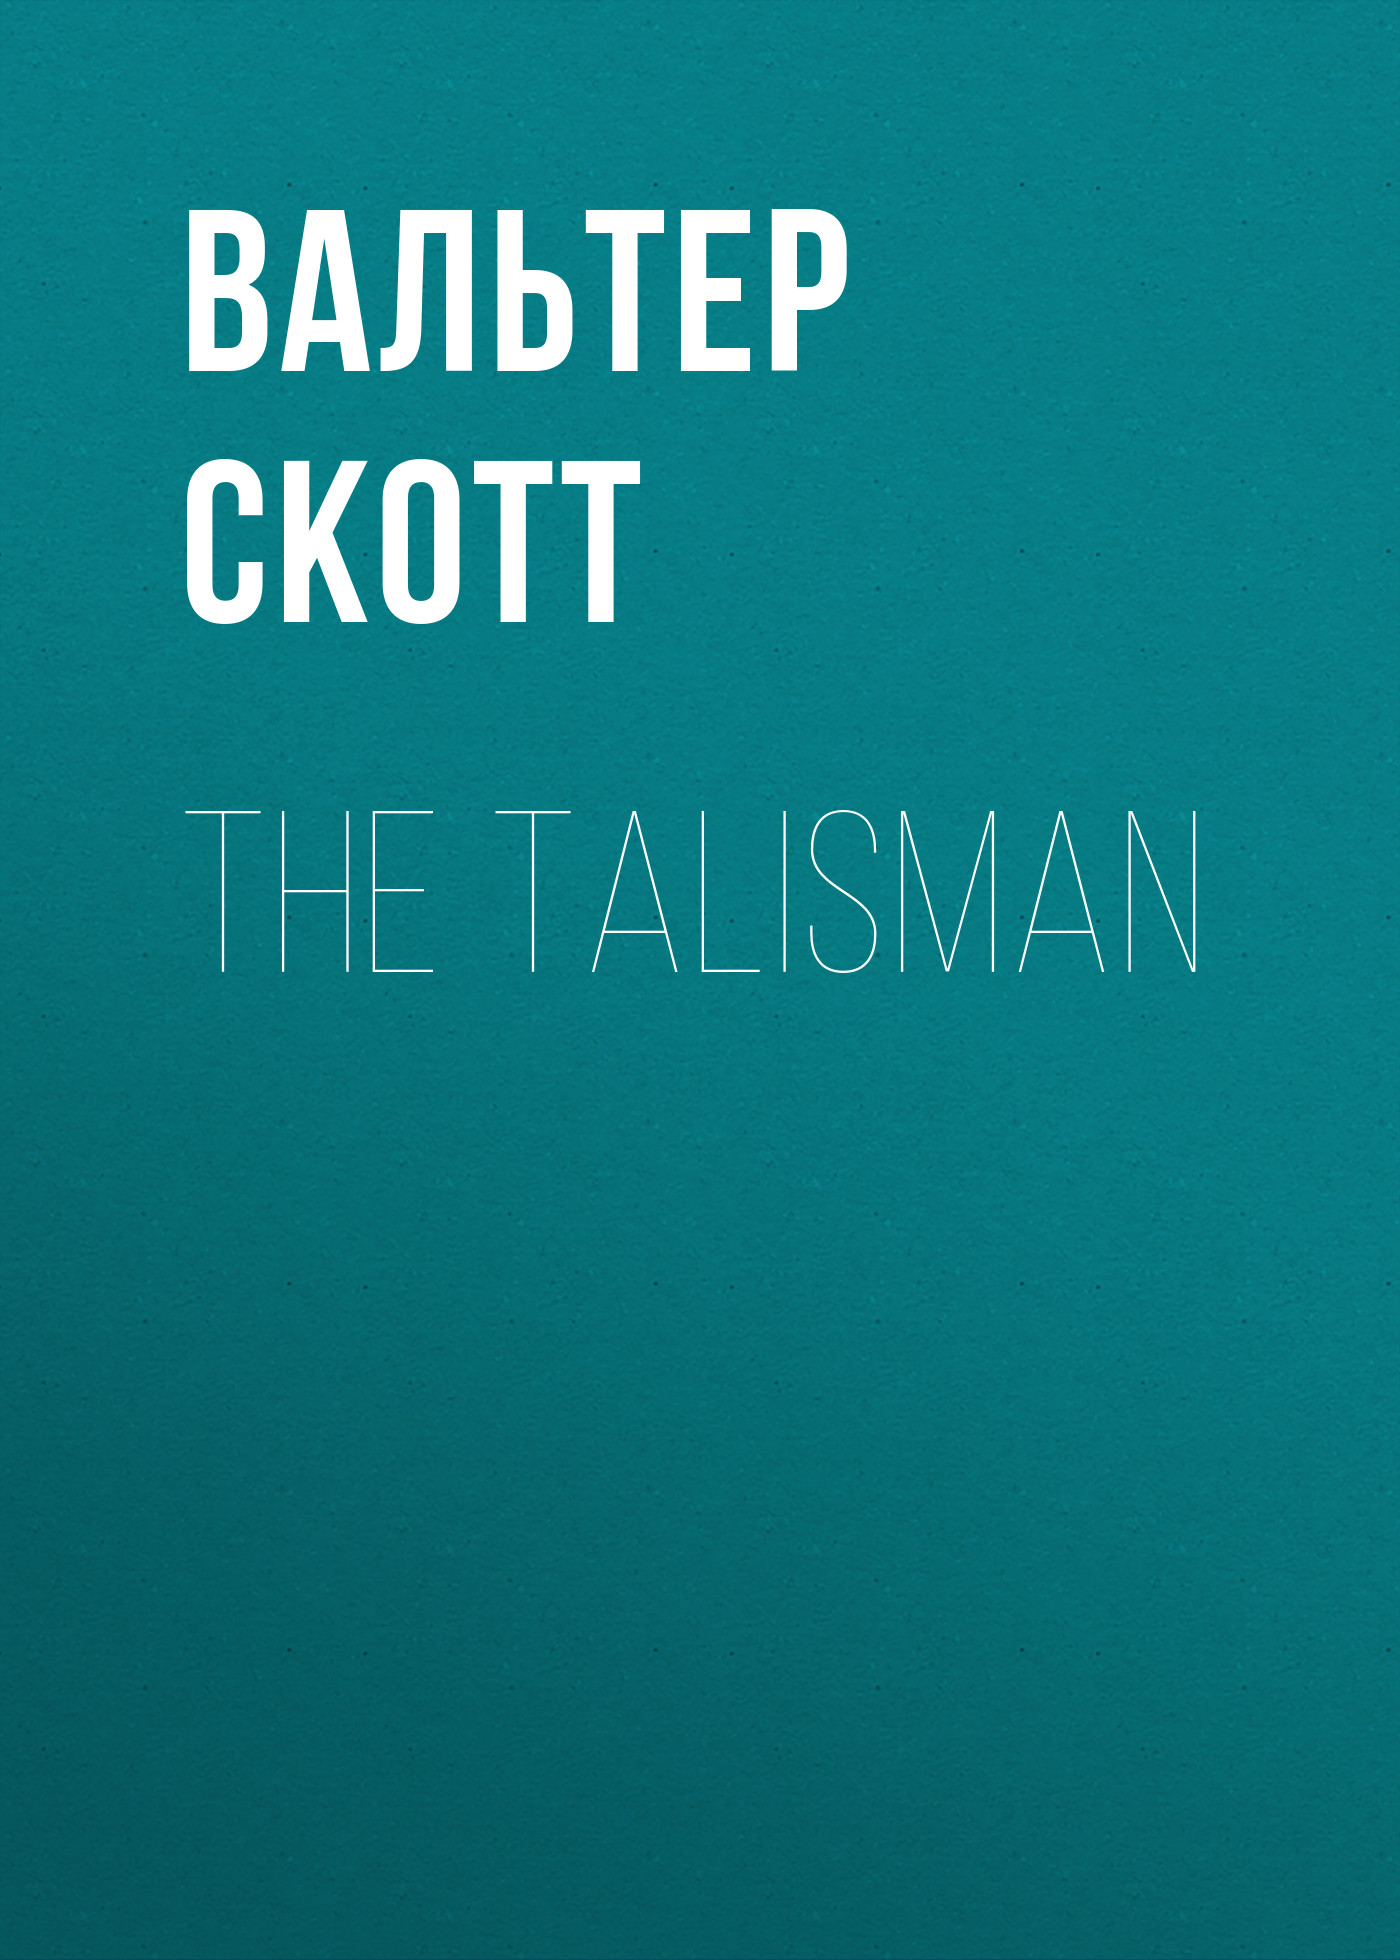 Вальтер Скотт The Talisman вальтер скотт the bride of lammermoor